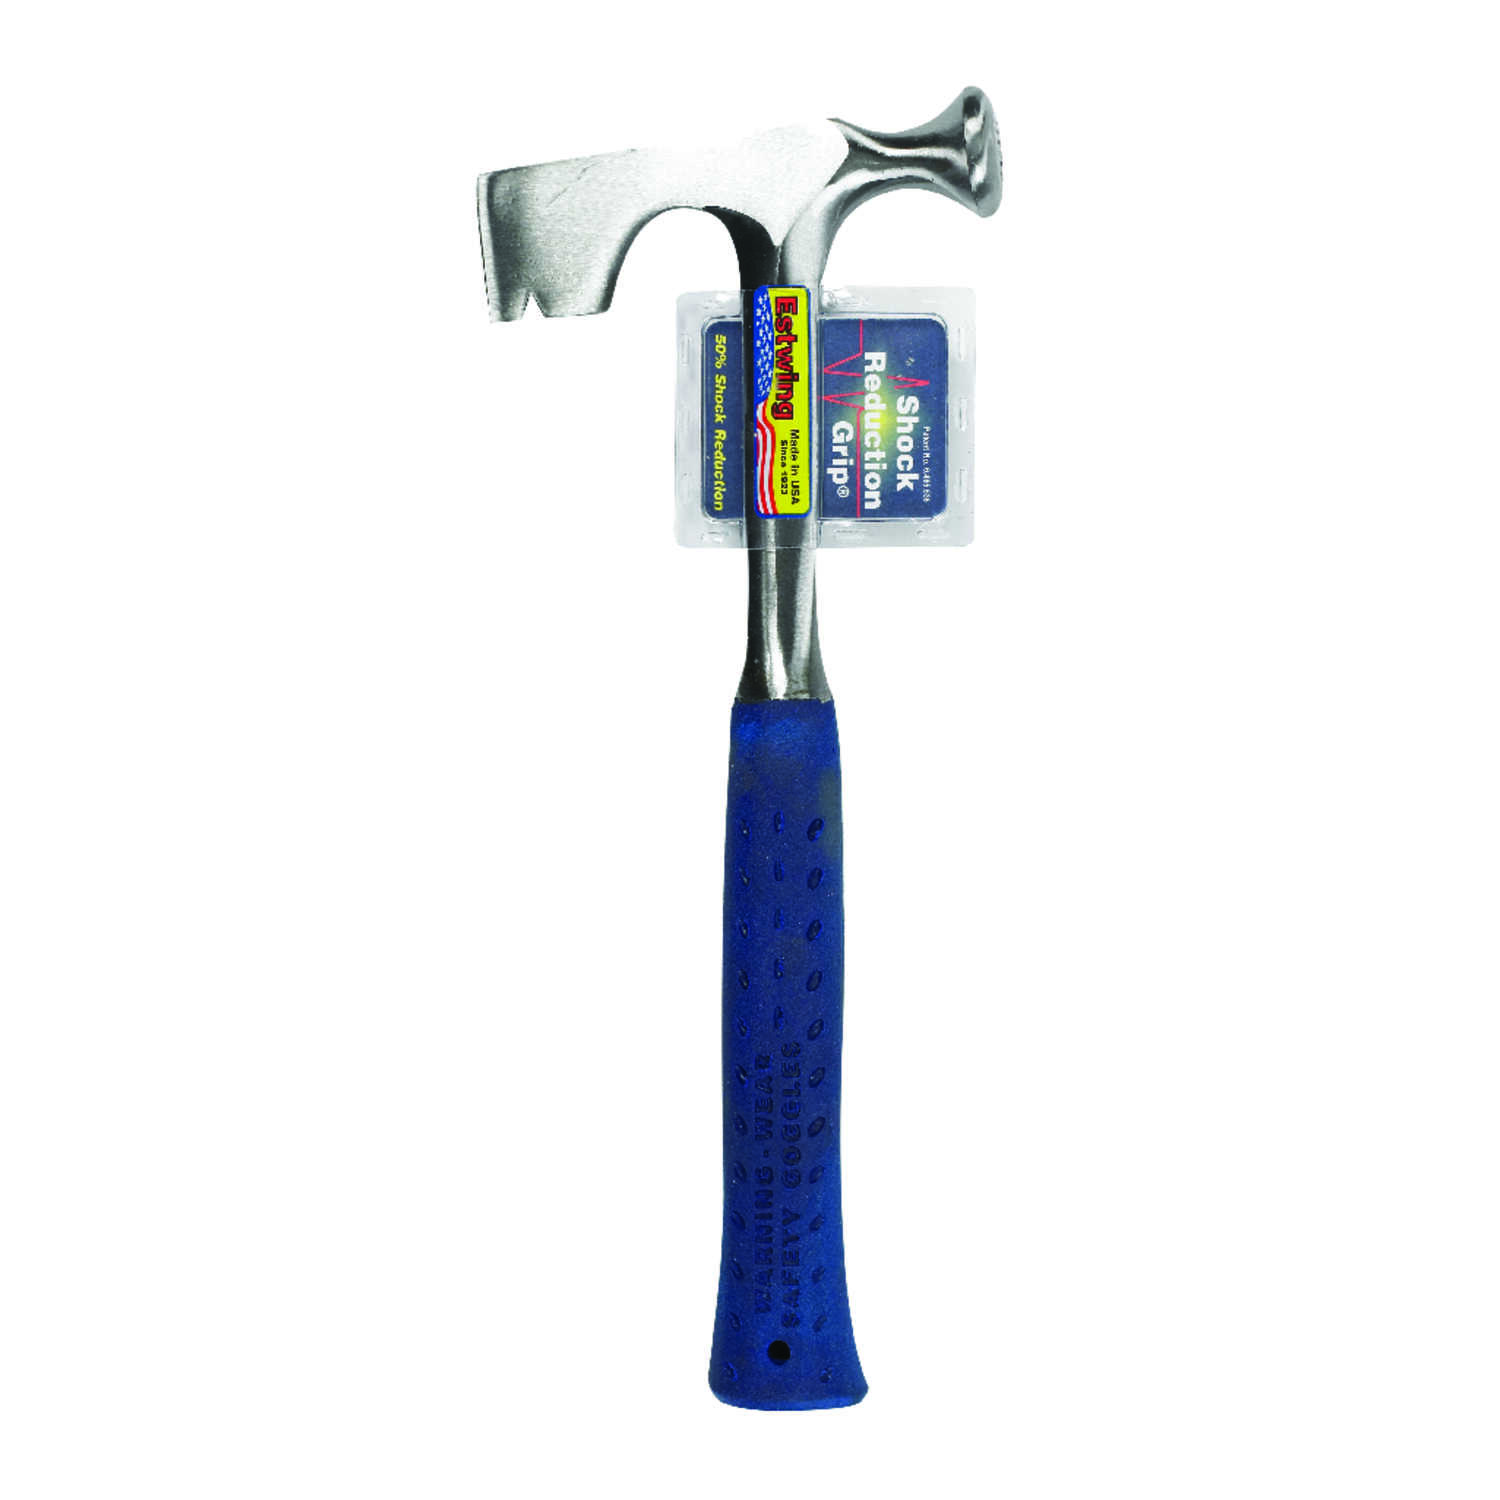 Estwing 11 oz. Hatchet Drywall Hammer Hatchet 14 in. Silver Forged ...